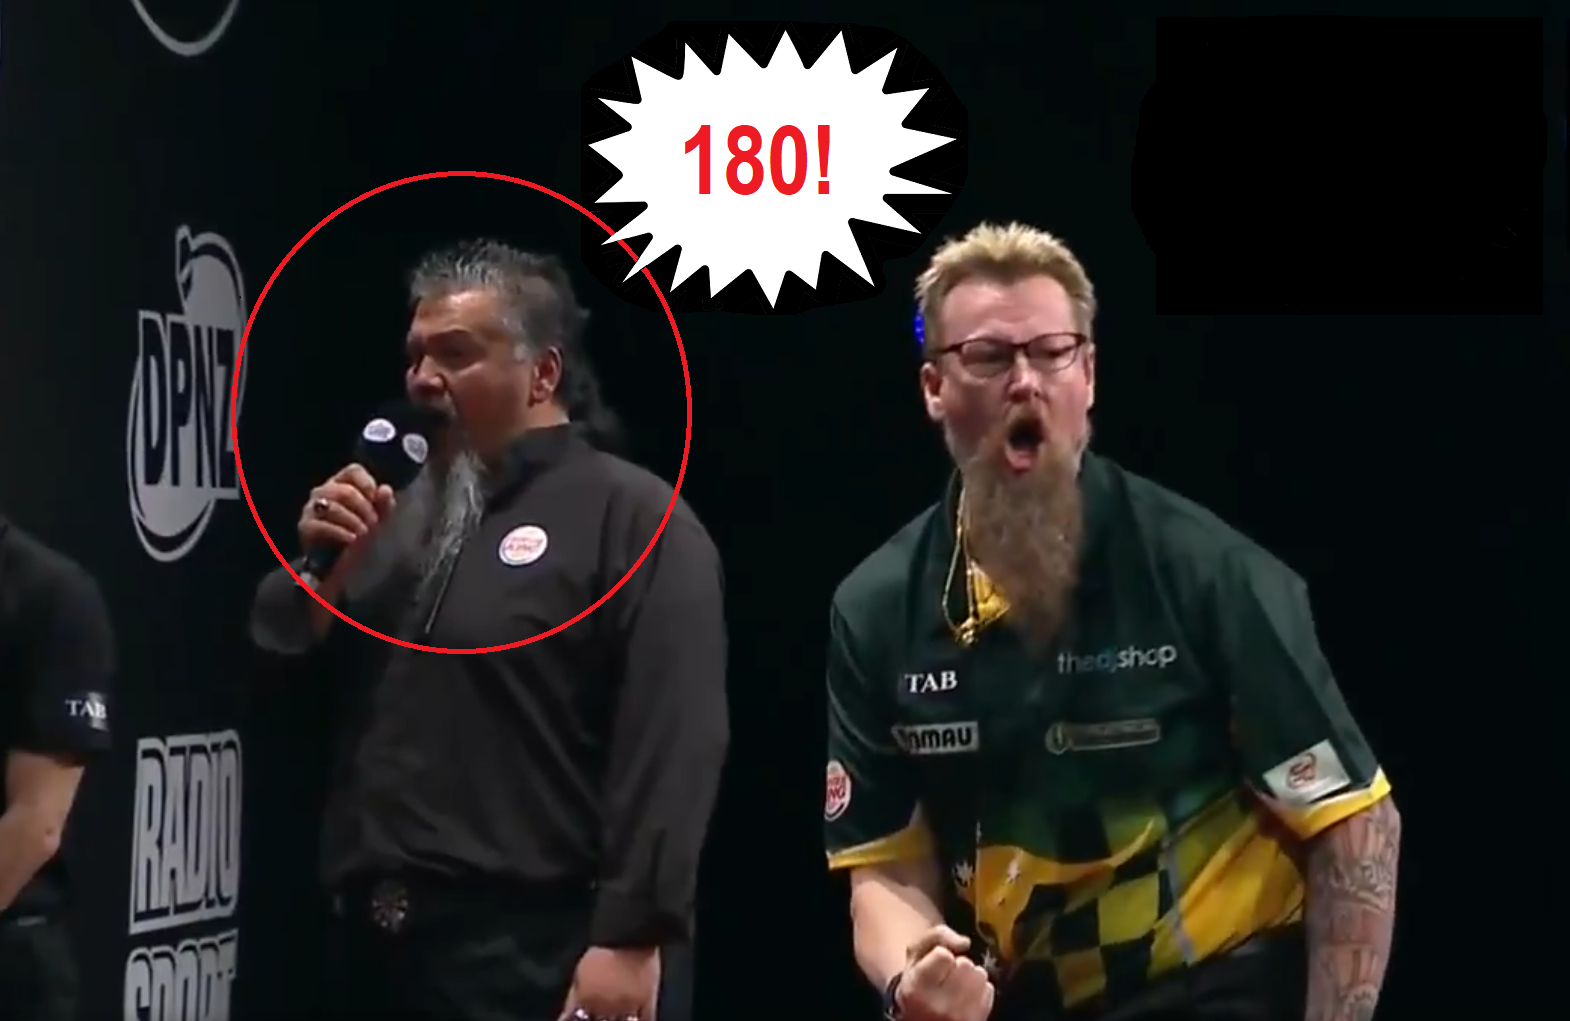 We Bring You The '180' Sound Of New PDC Referee Terry Jowett